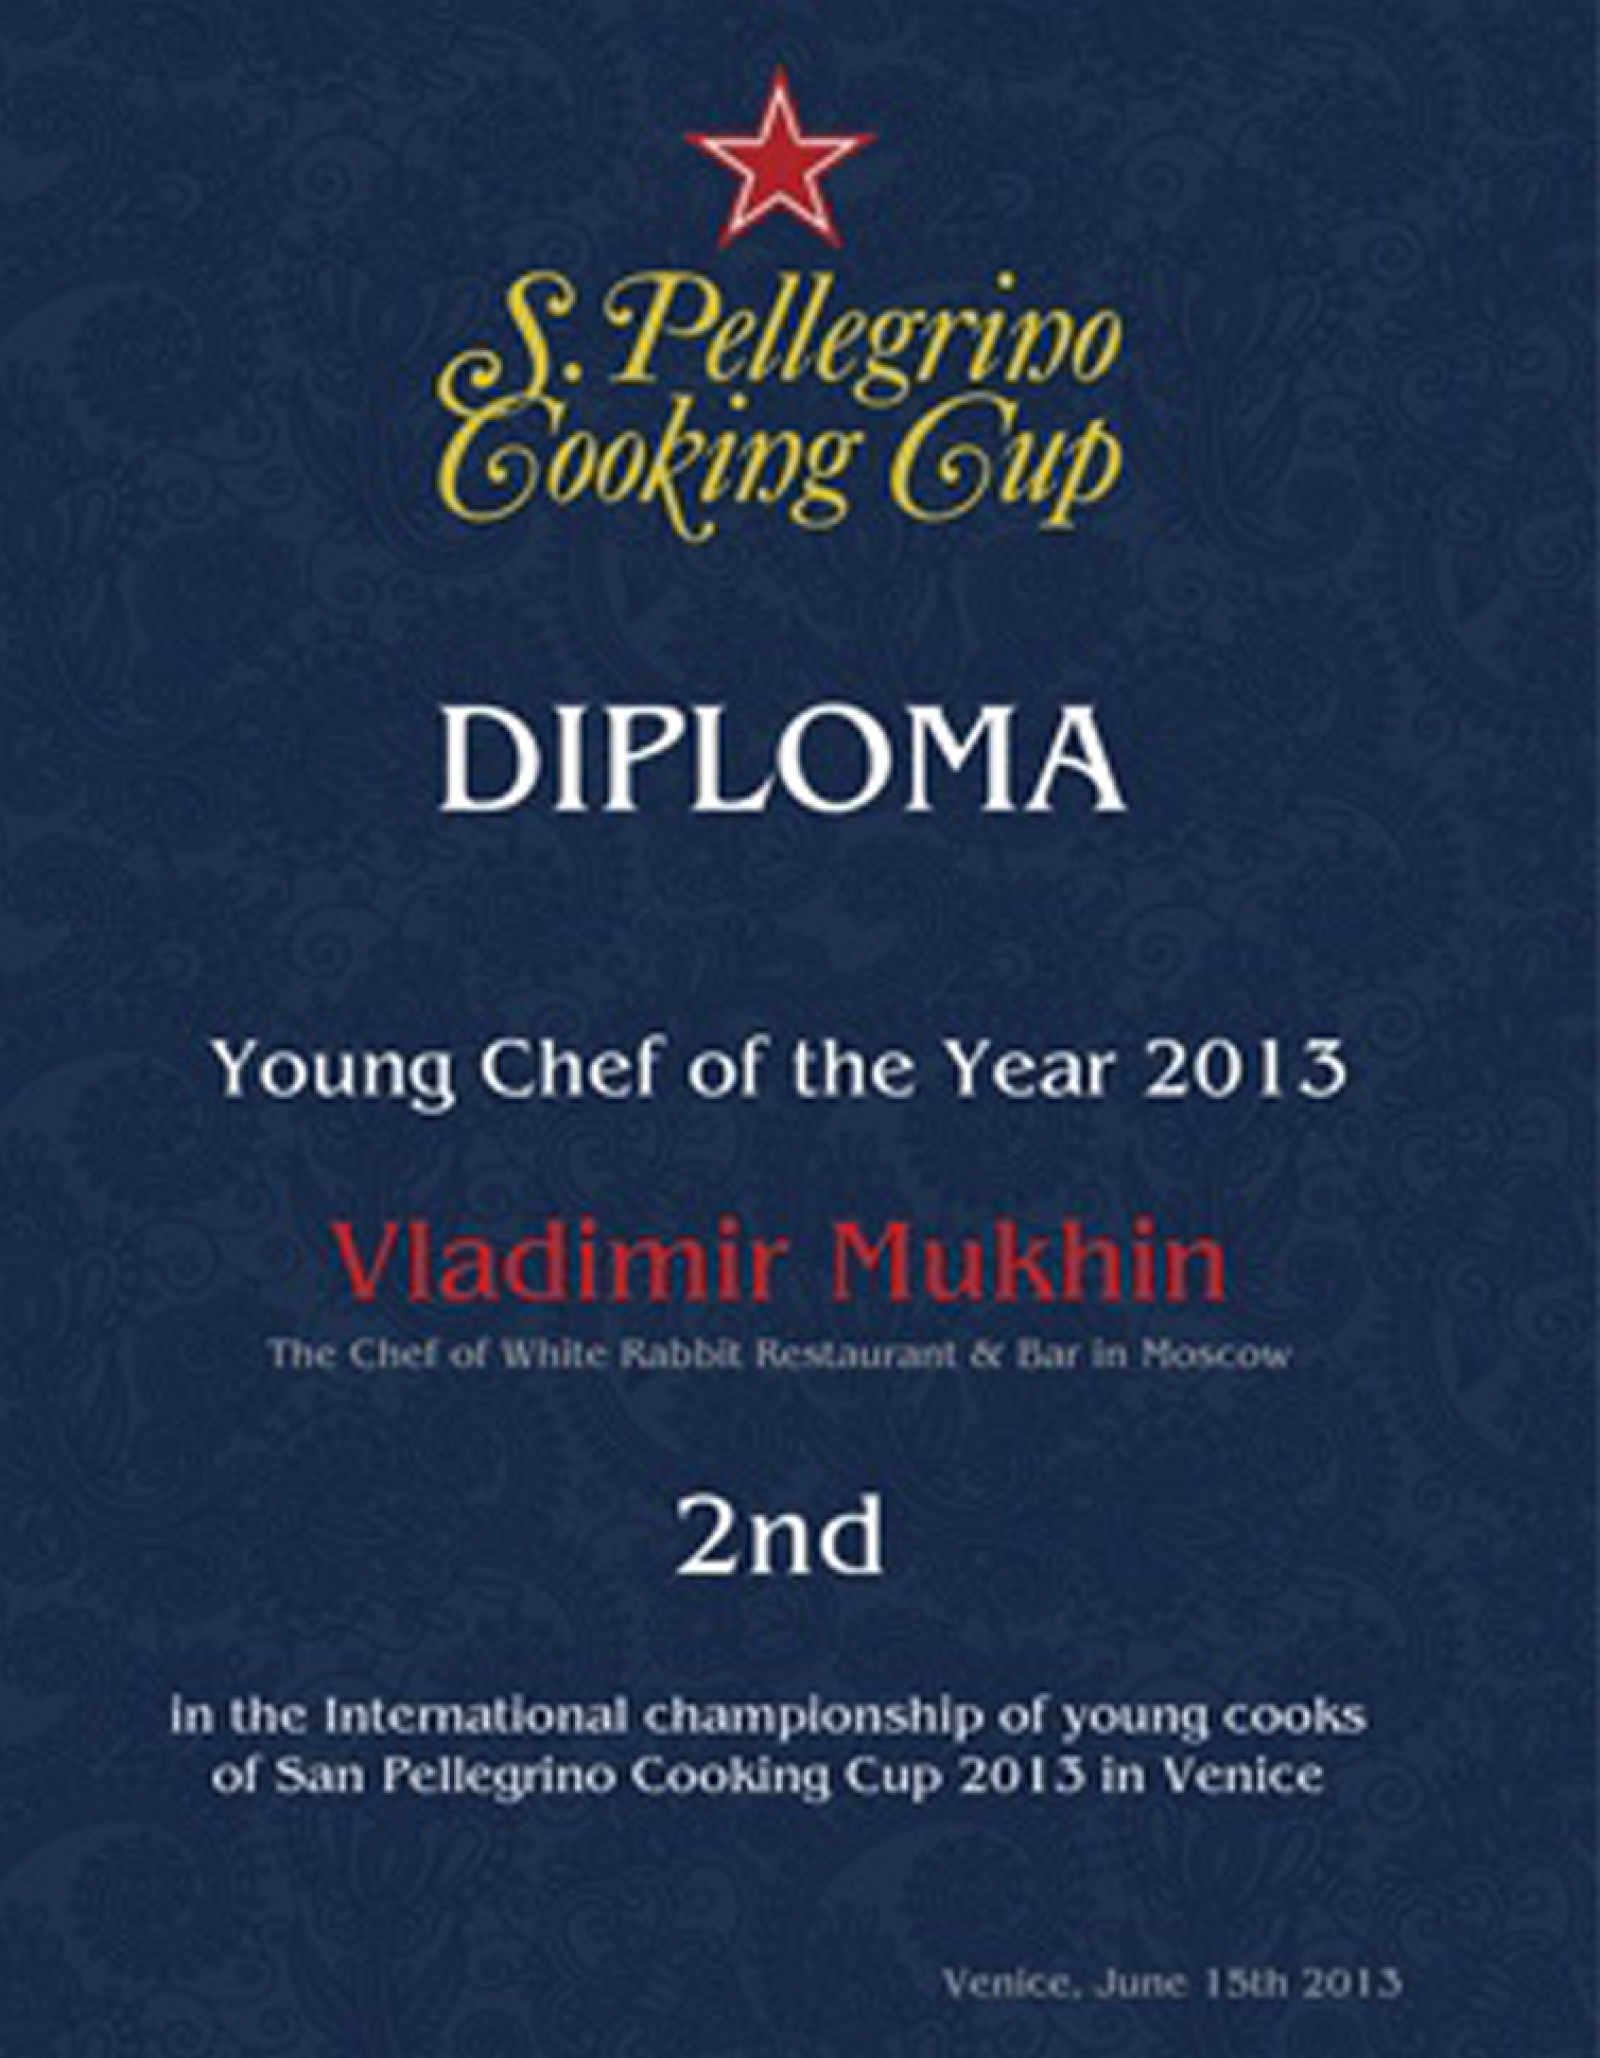 VLADIMIR MUKHIN - THE VICE-CHAMPION OF S. PELLEGRINO COOKING CUP 2013